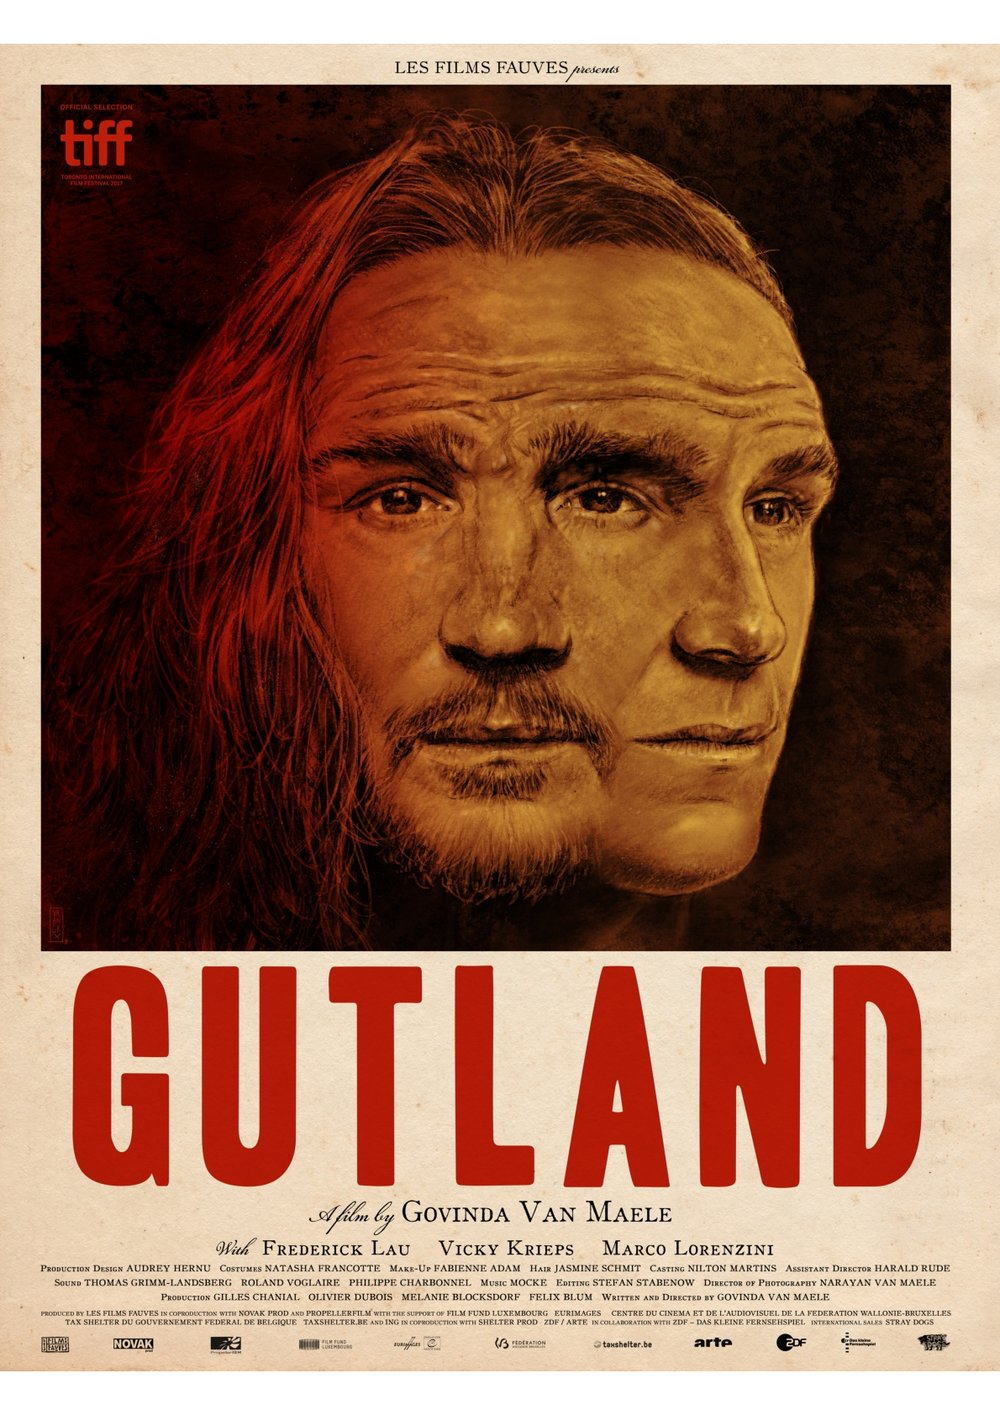 GUTLAND - Directed by Govinda VAN MAELEScript by Govinda VAN MAELEWith Frederick LAU, Vicky KRIEPS& Marco LORENZINIYear: 2018Original Version: Luxembourgish, GermanGenre: Drama, ThrillerRunning Time: 117minProduction companies: LES FILMS FAUVES (LU), NOVAK PROD (BE) & PROPELLER FILM (DE)